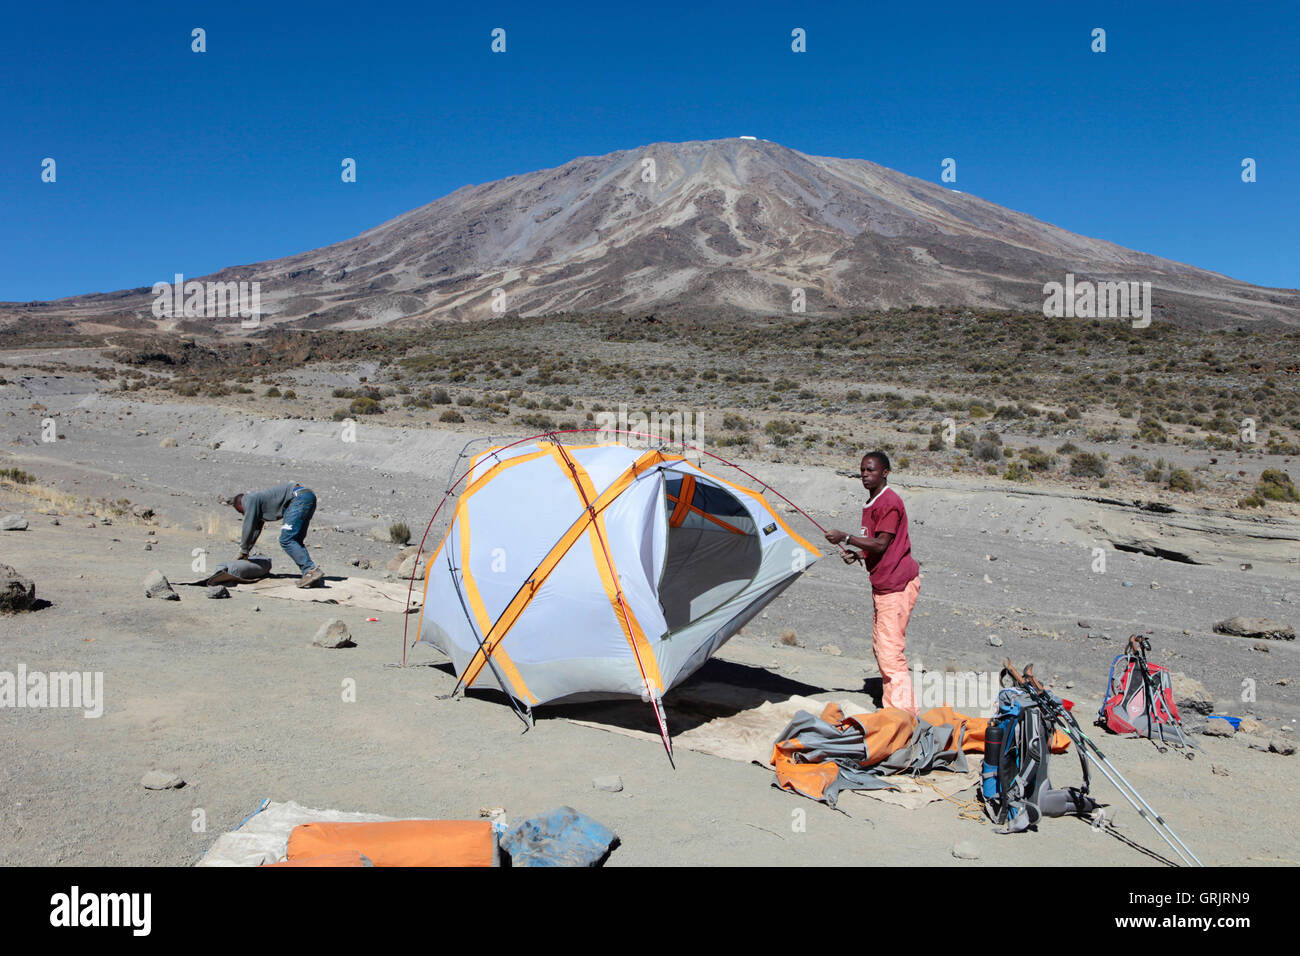 Two Tanzanian porters are setting up a tent for their western clients on the slopes of Kilimanjaro. - Stock Image